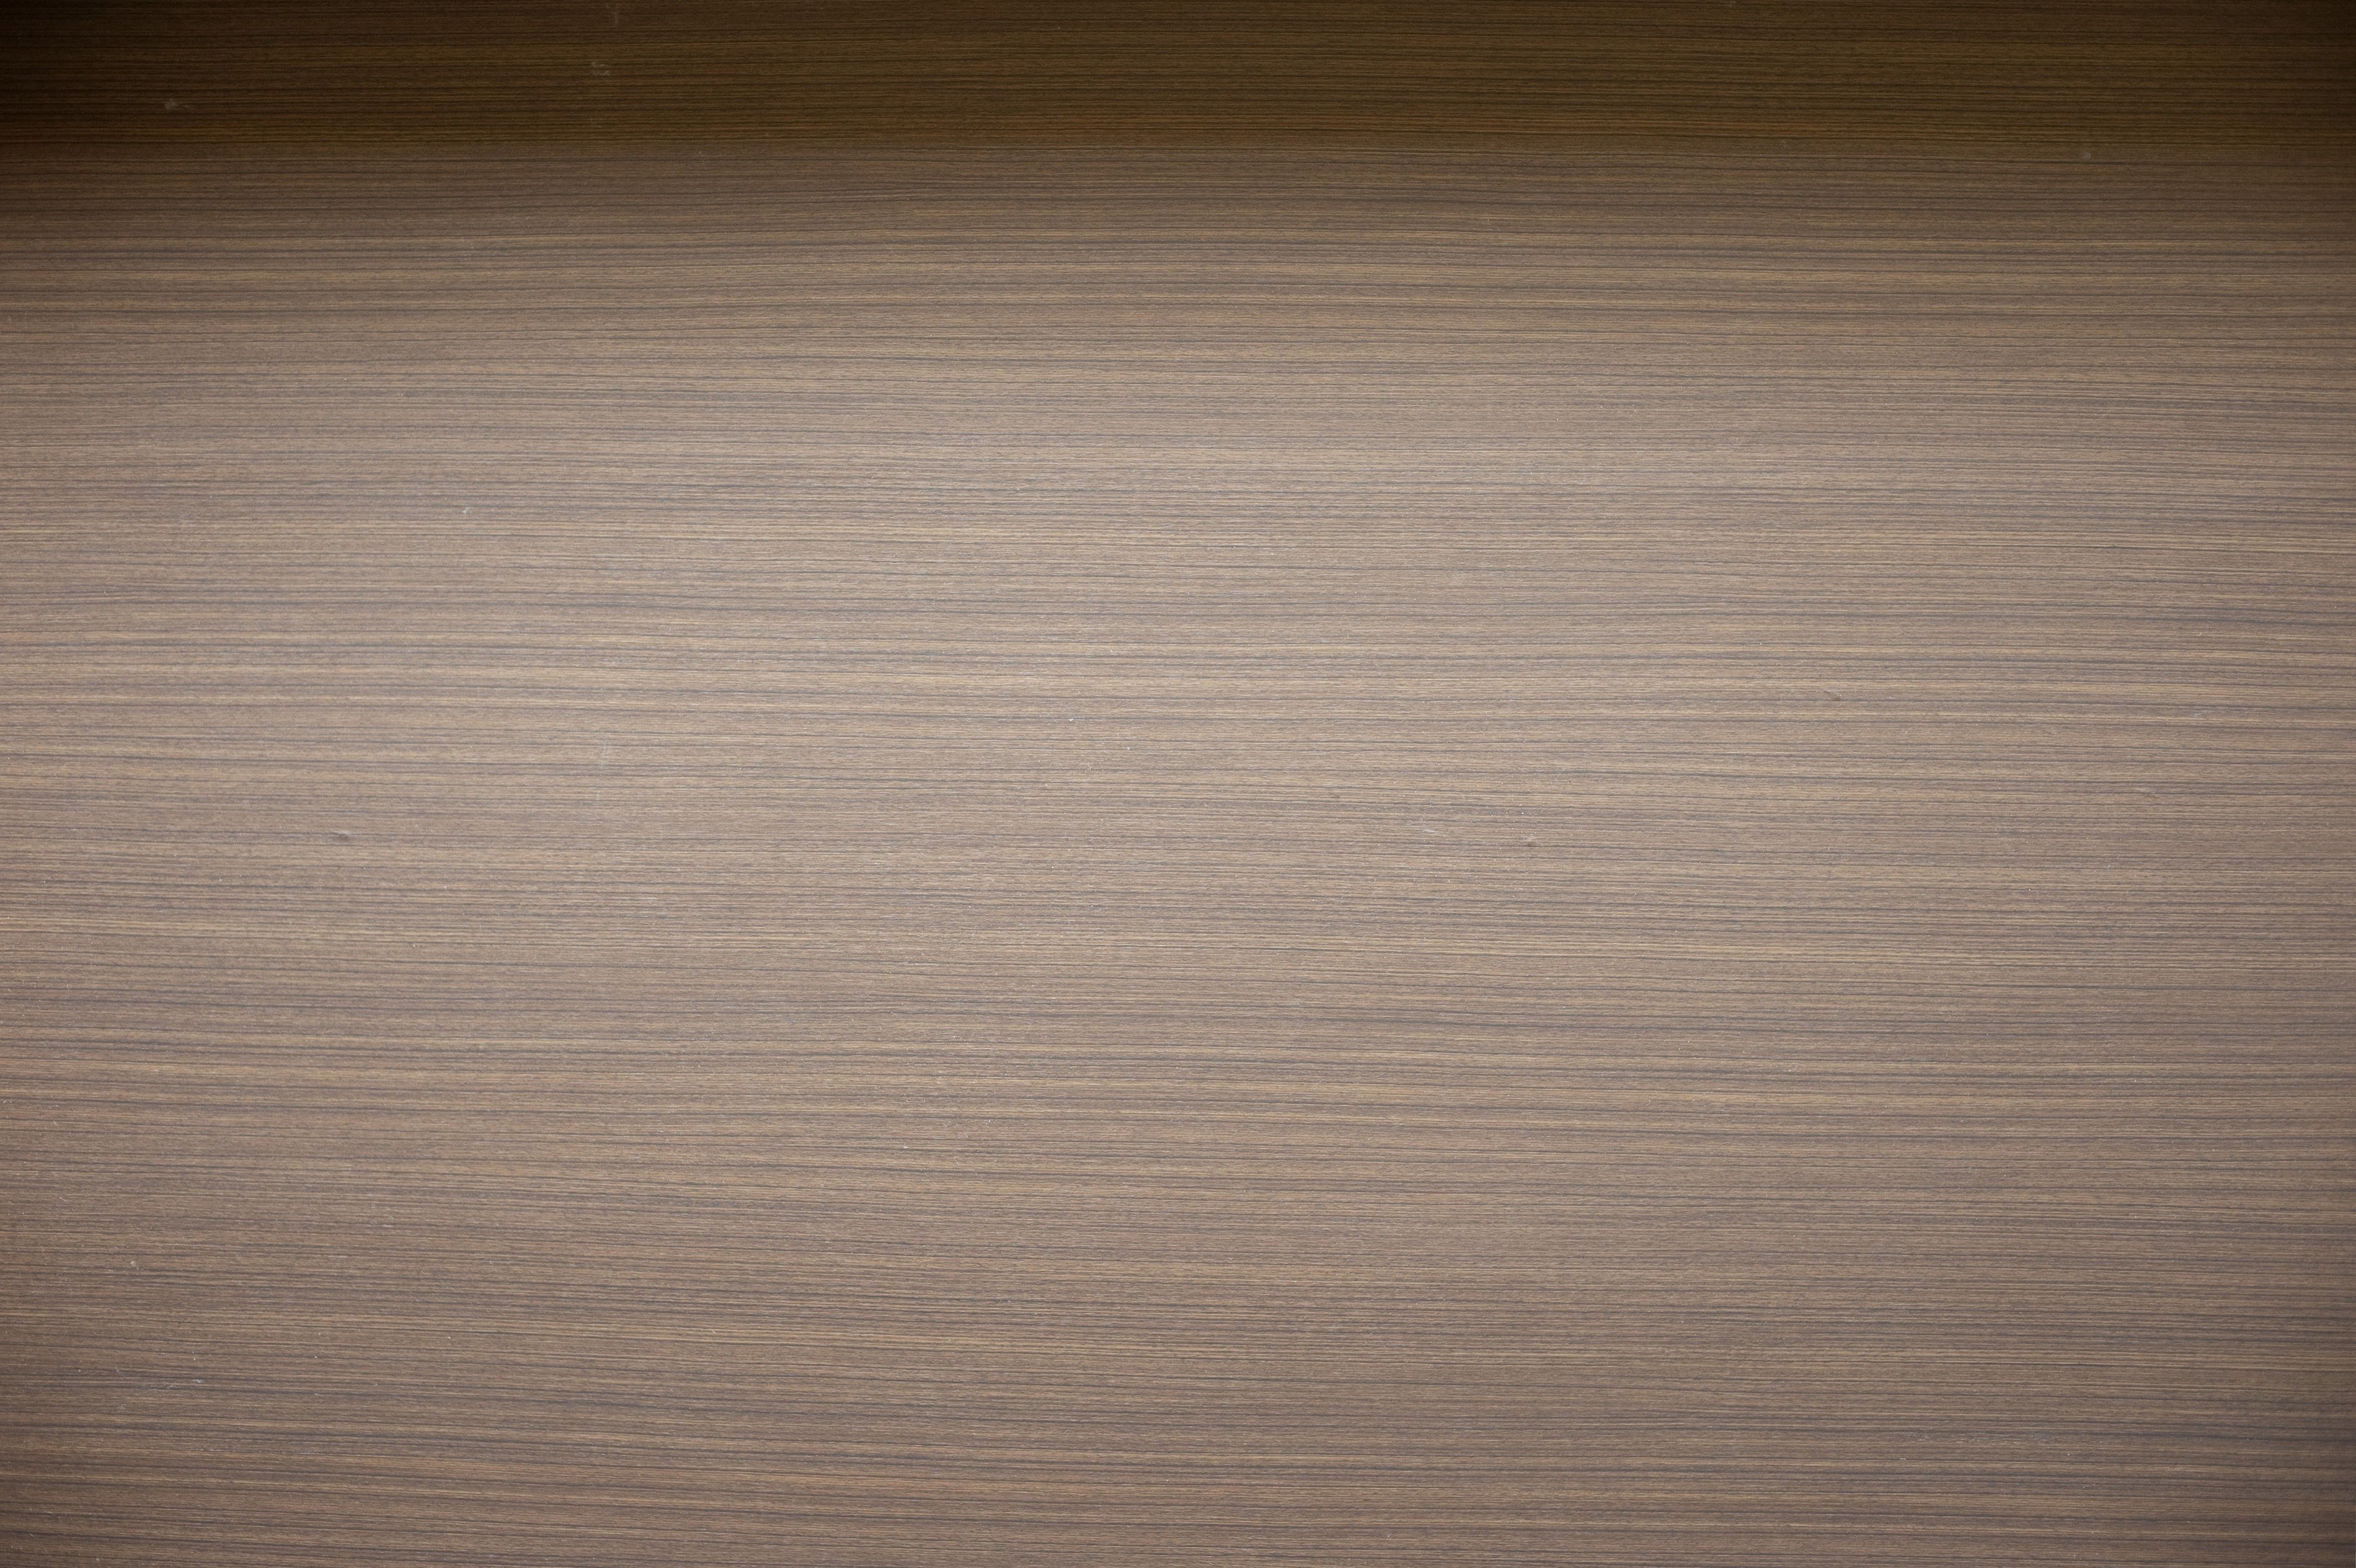 Background texture of faux wood made of plastic laminate for modern interior decorating